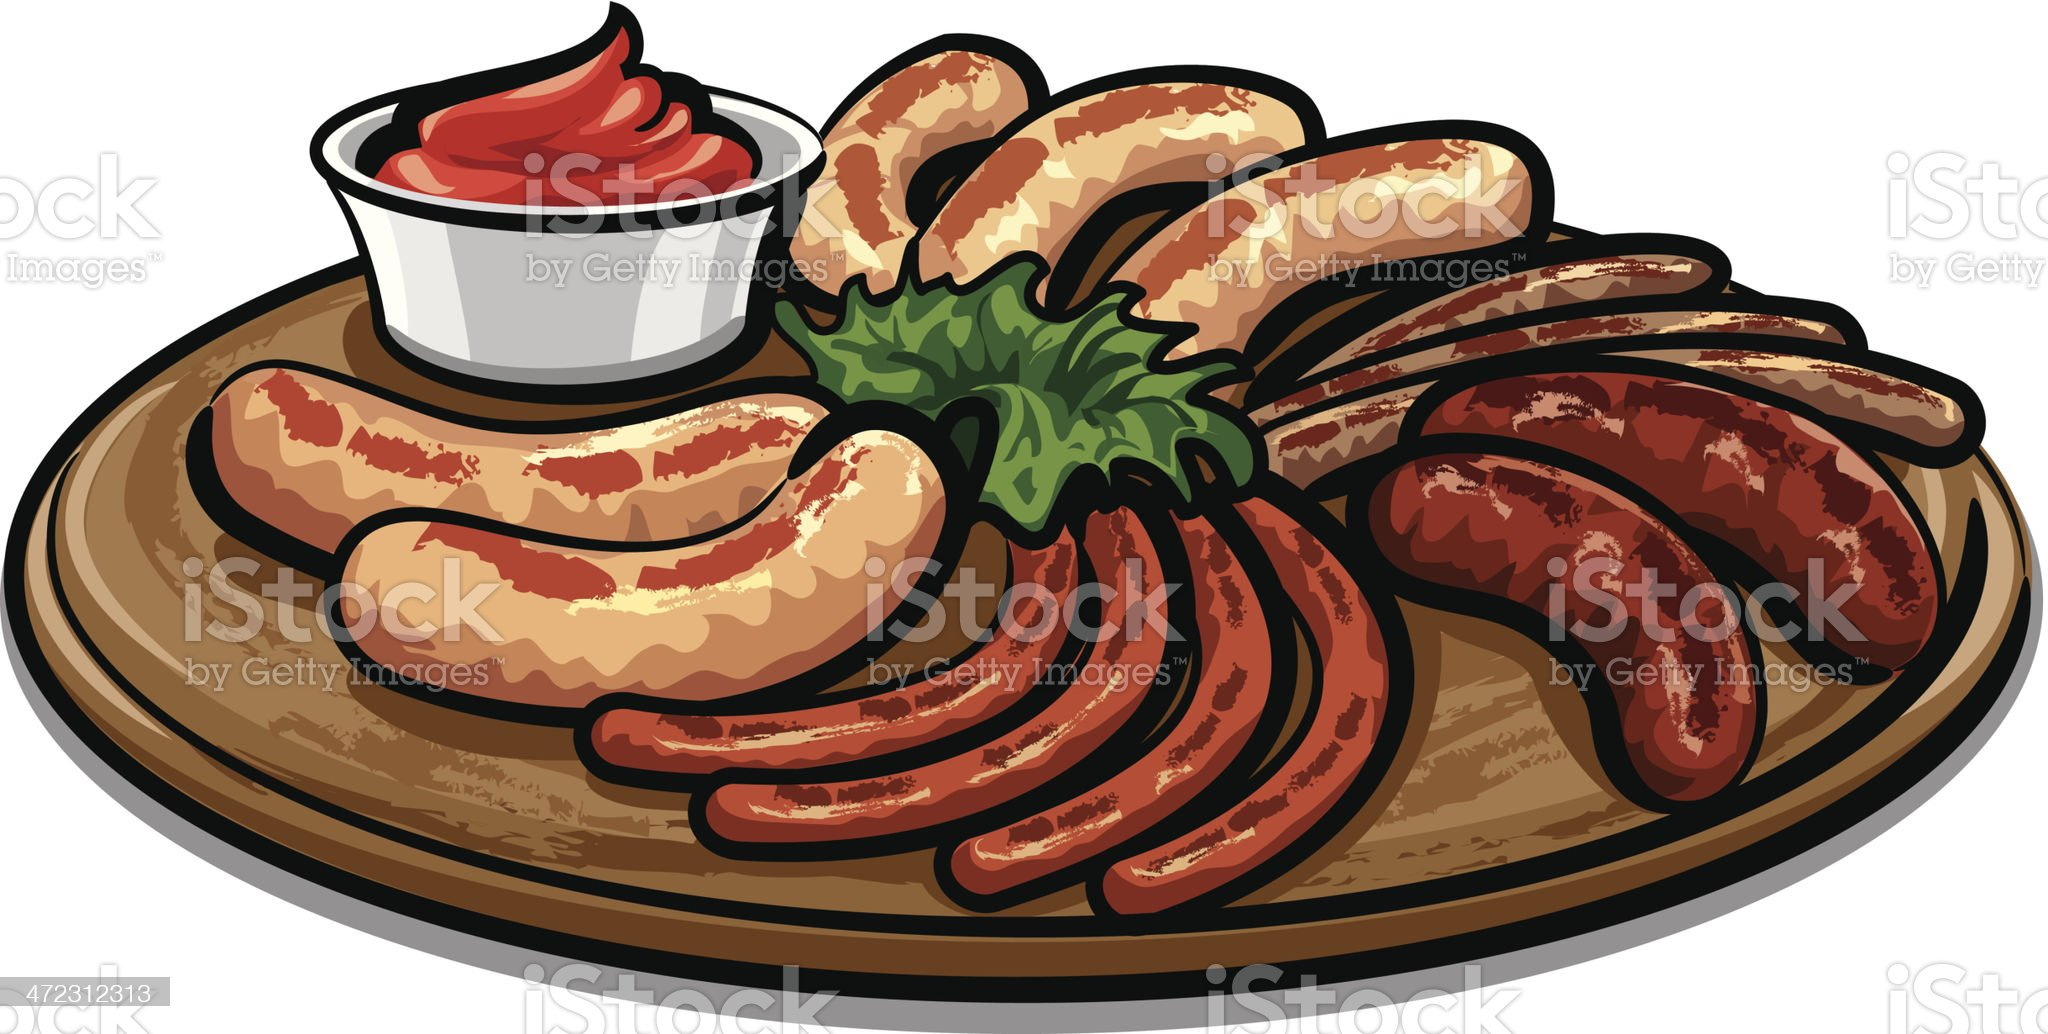 grilled sausages with sauce royalty-free stock vector art